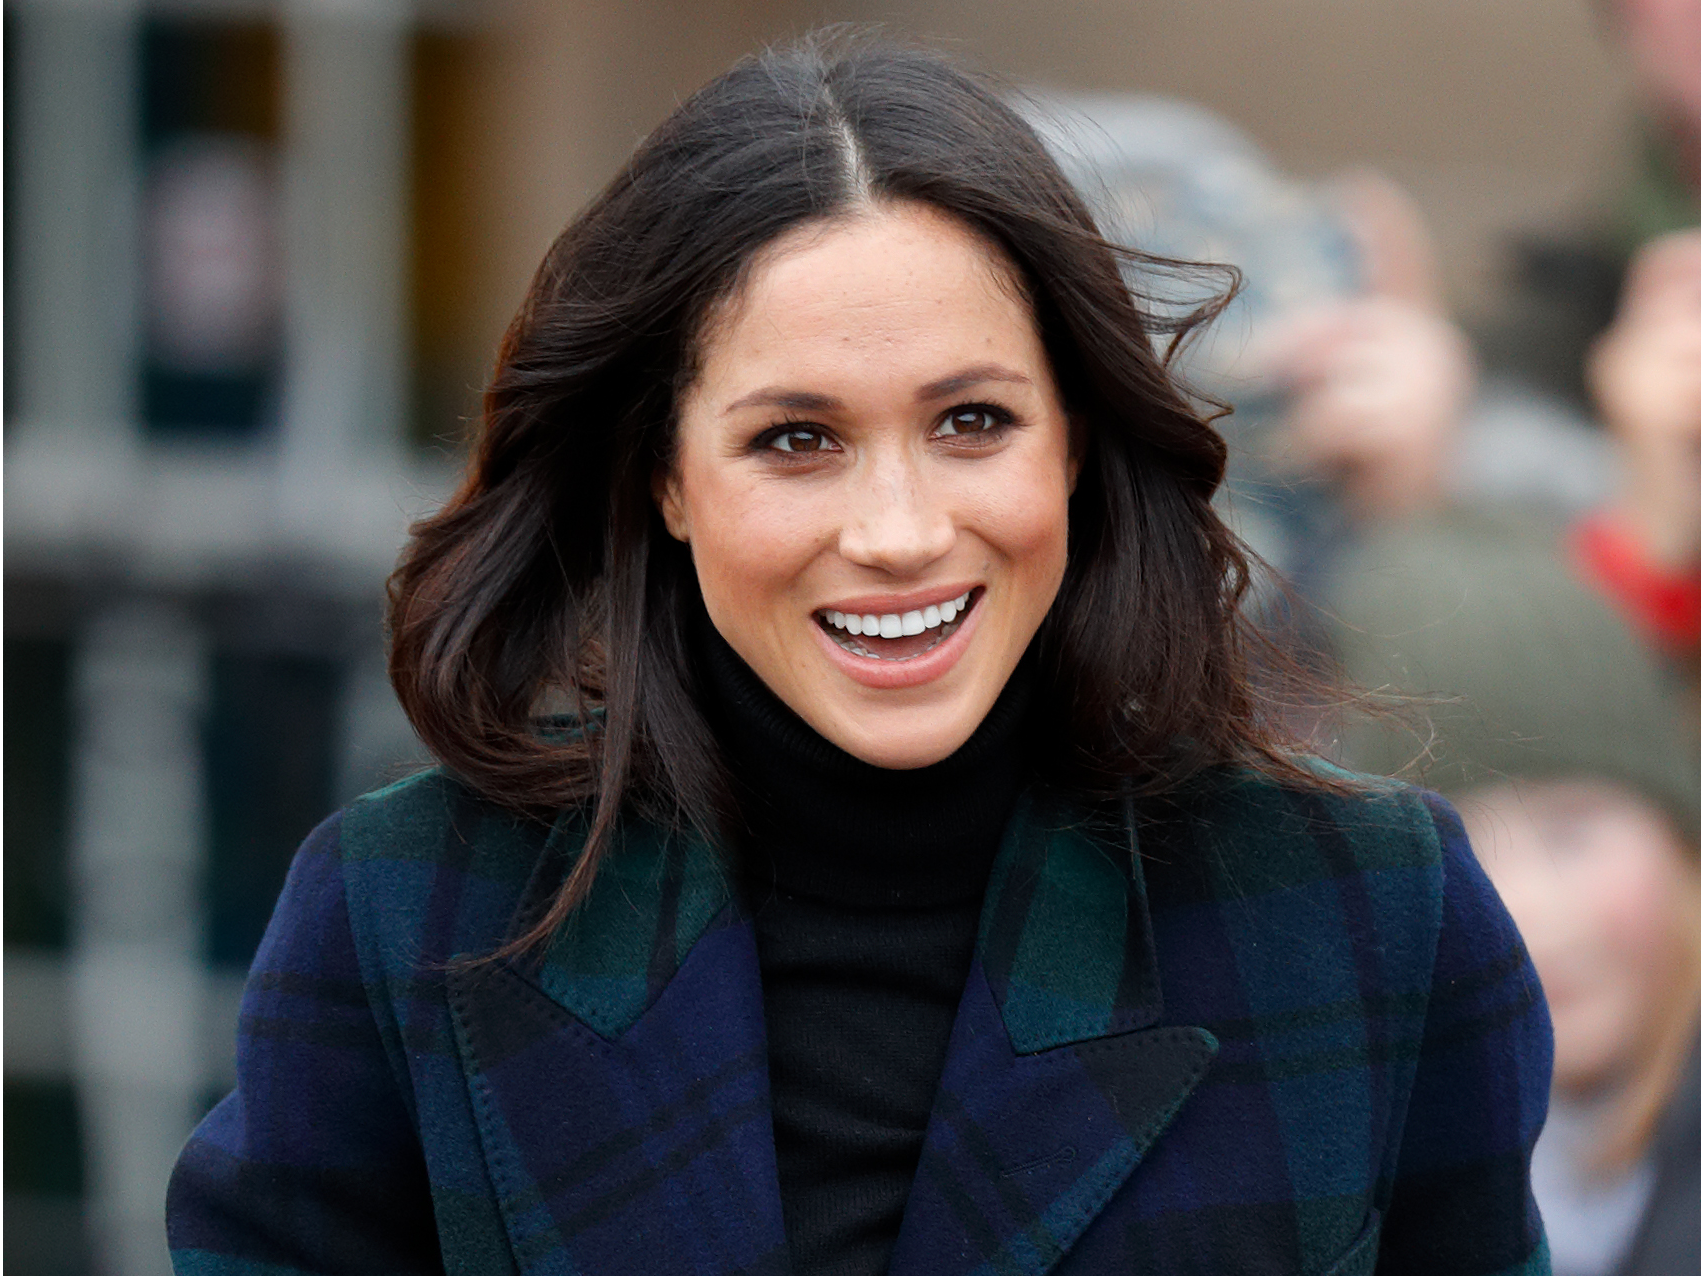 Markle is still waiting to become a British citizen even though she moved to England 2 years agoMeghan Markle is still waiting to become a British citizen even though she...